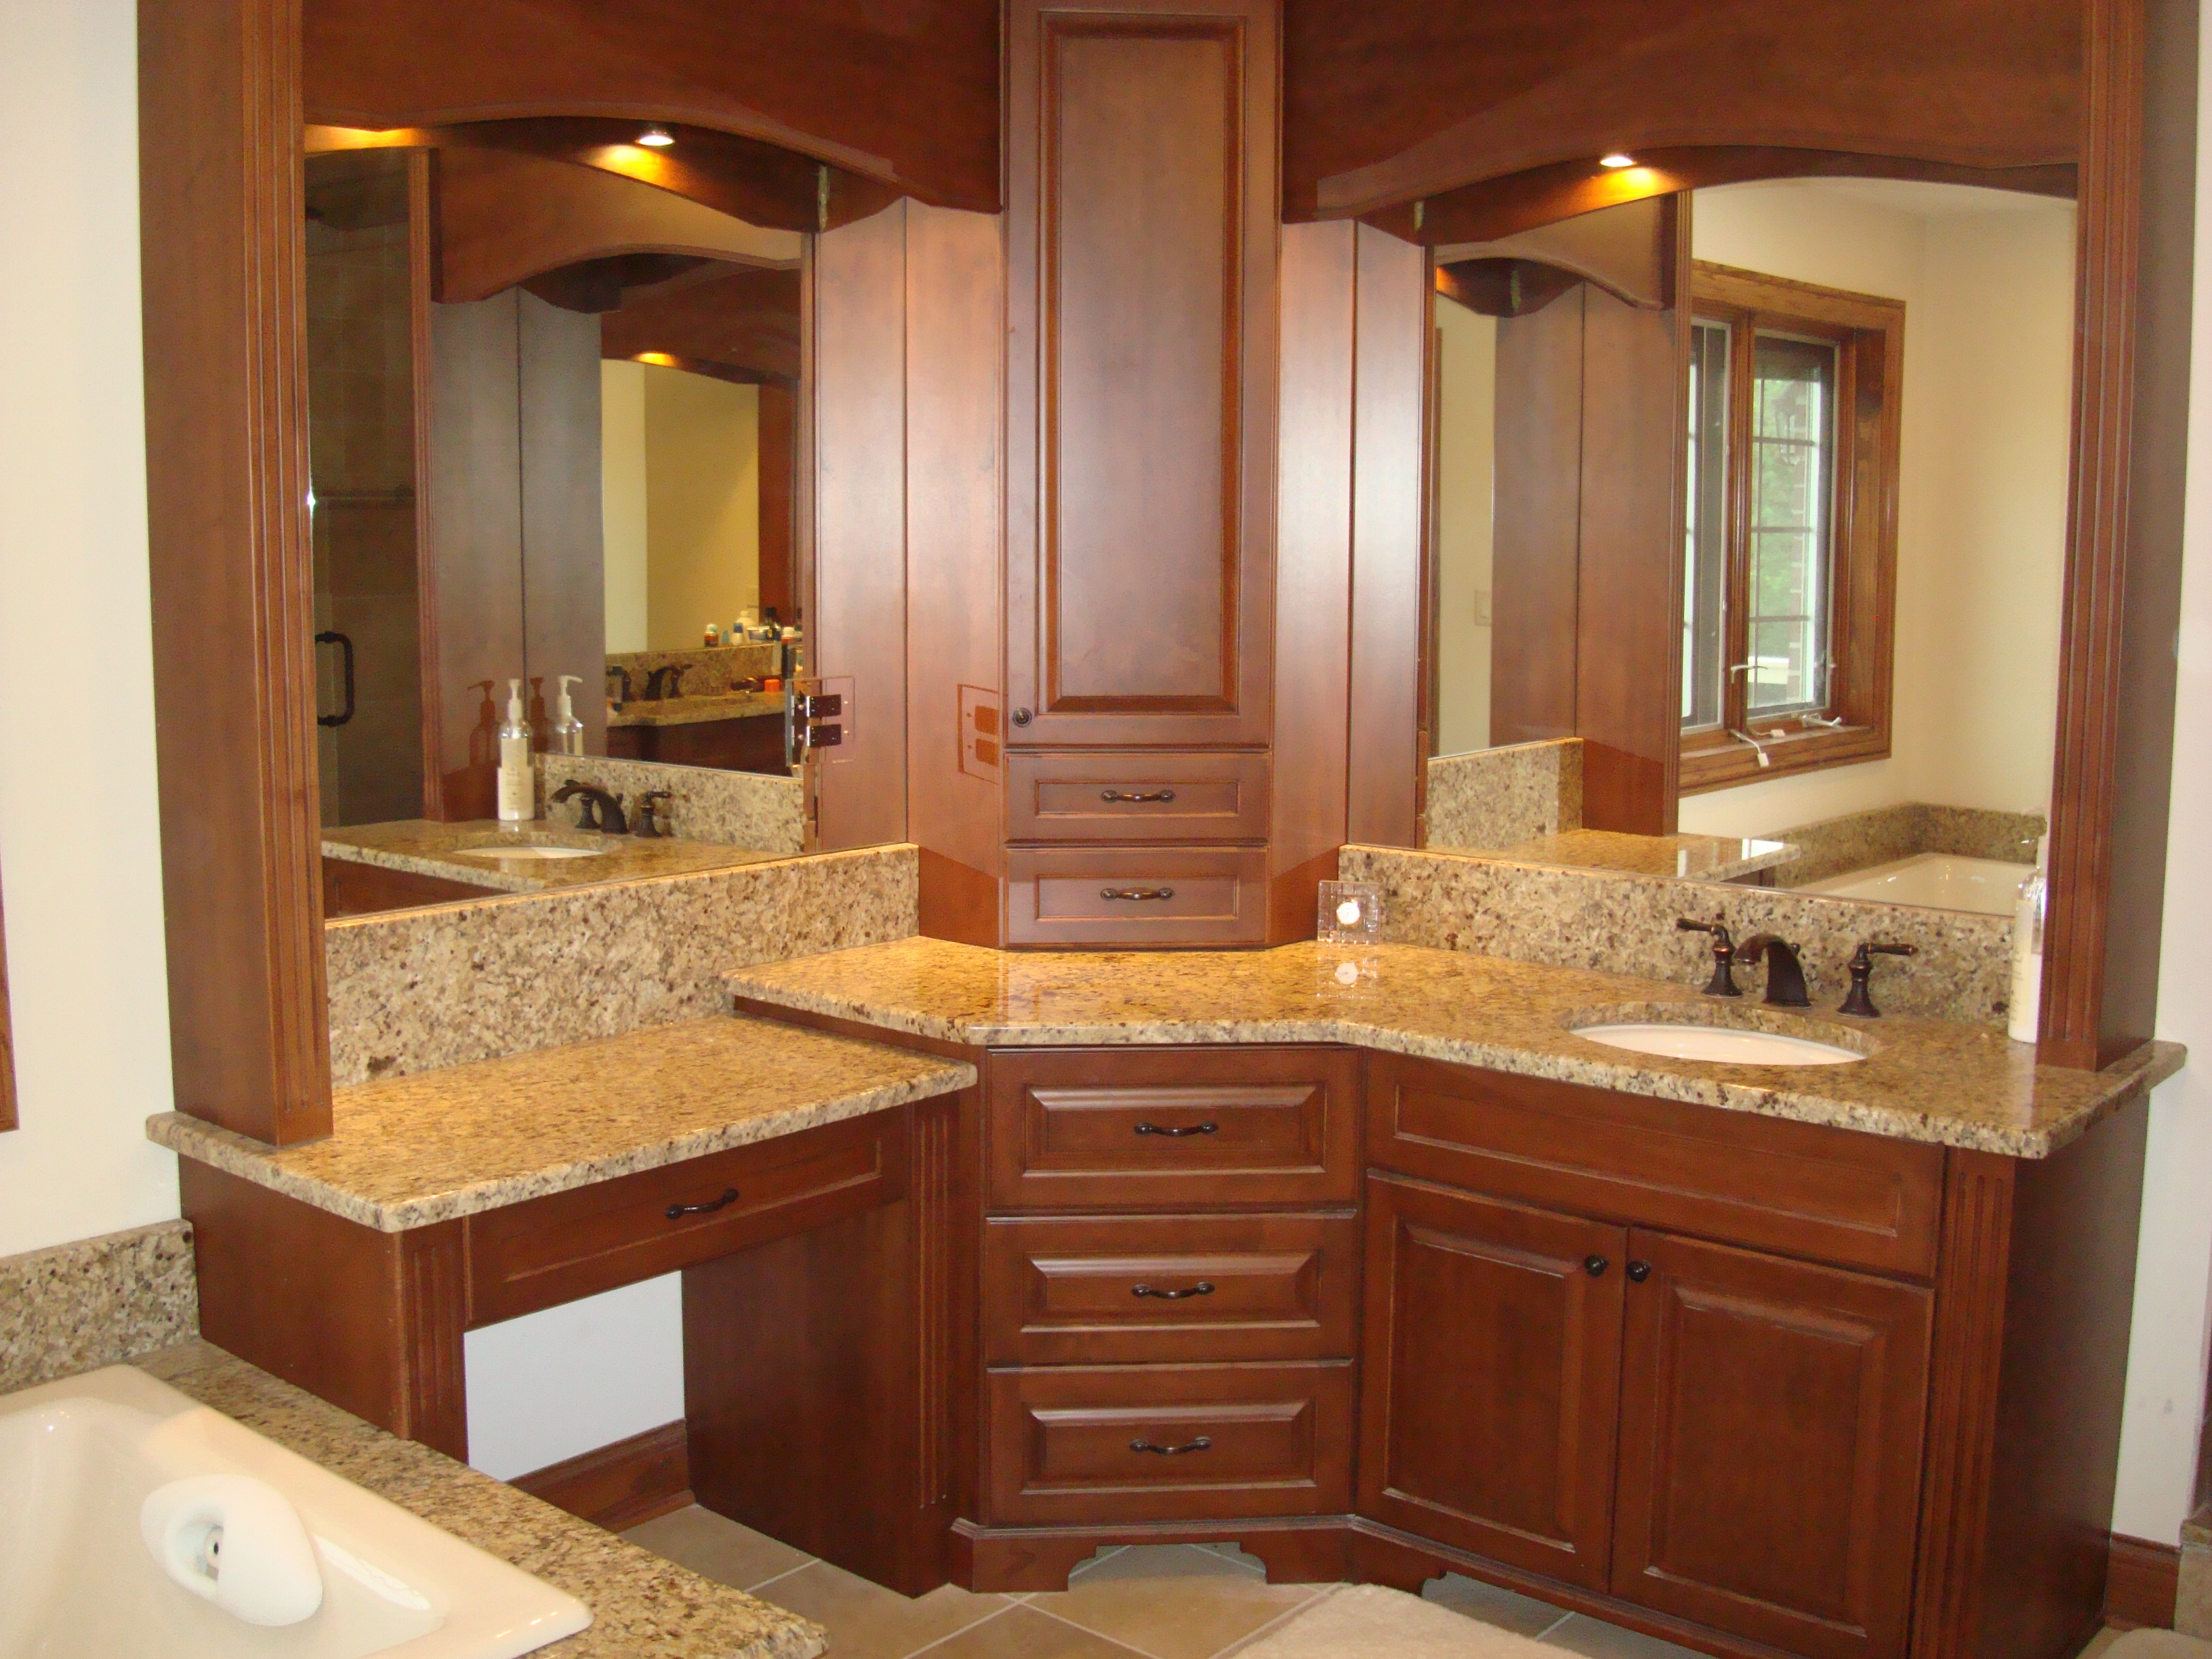 Traditional Chestnut Bathroom Cabinets By Graber